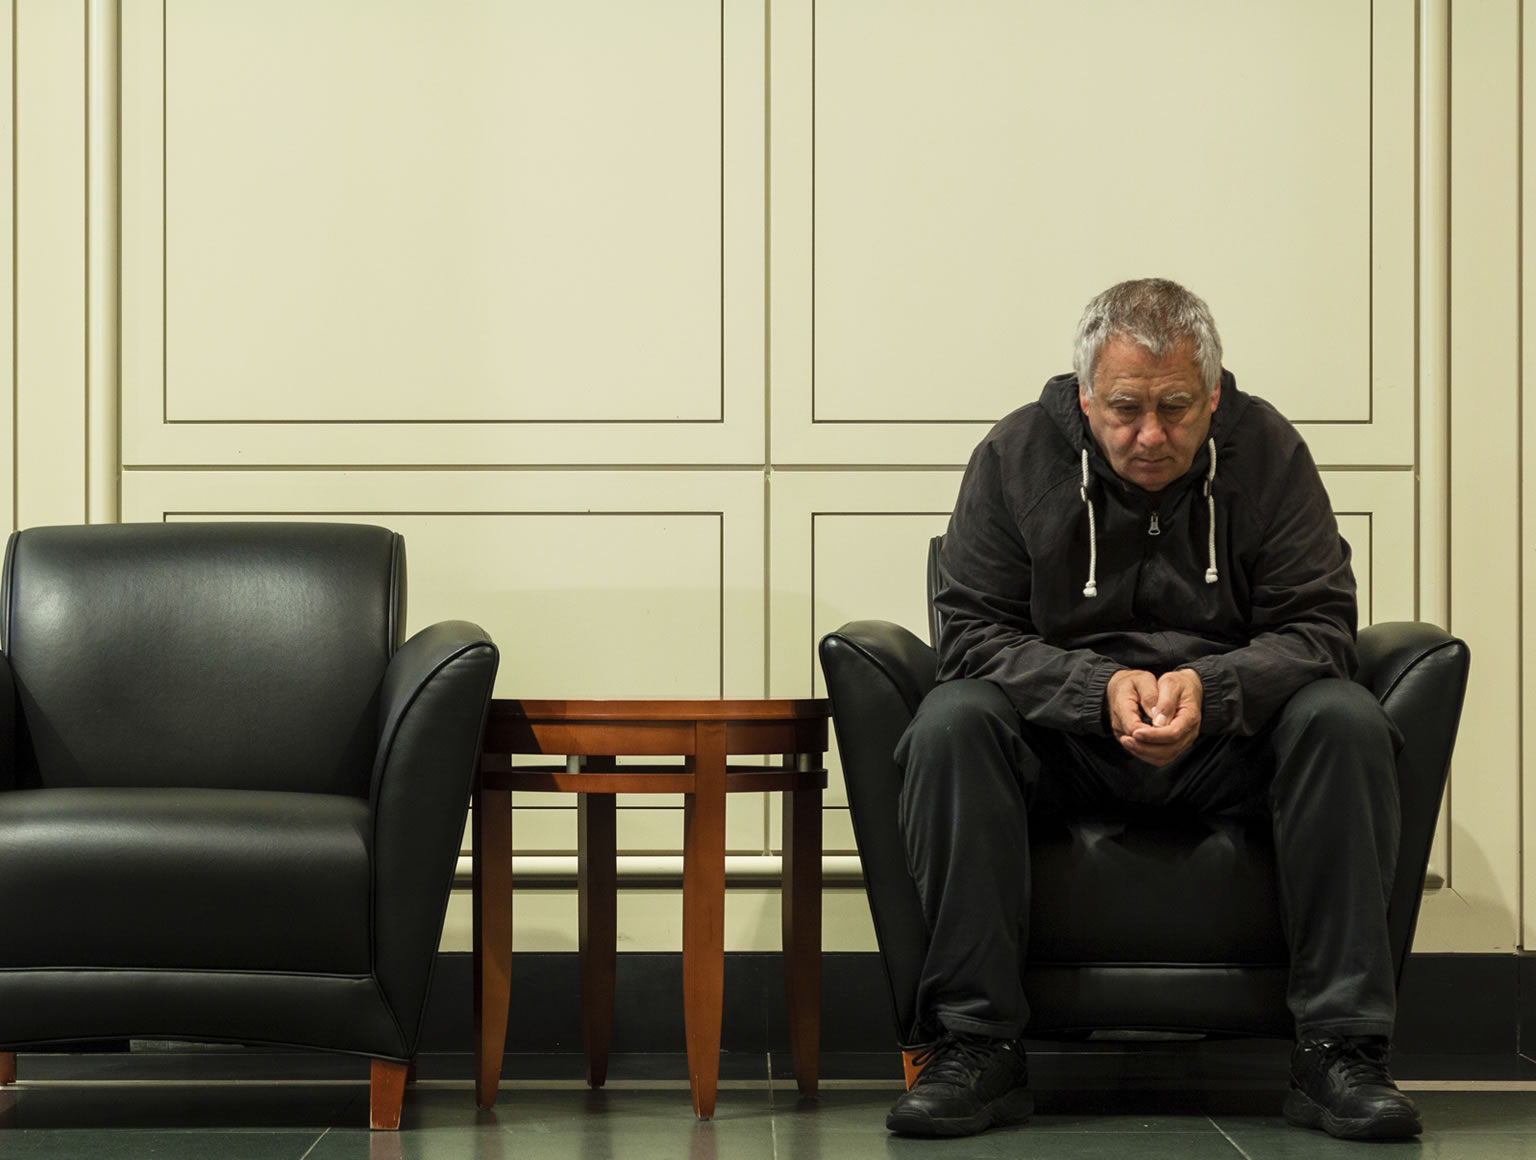 Man sitting alone in large room looking at floor